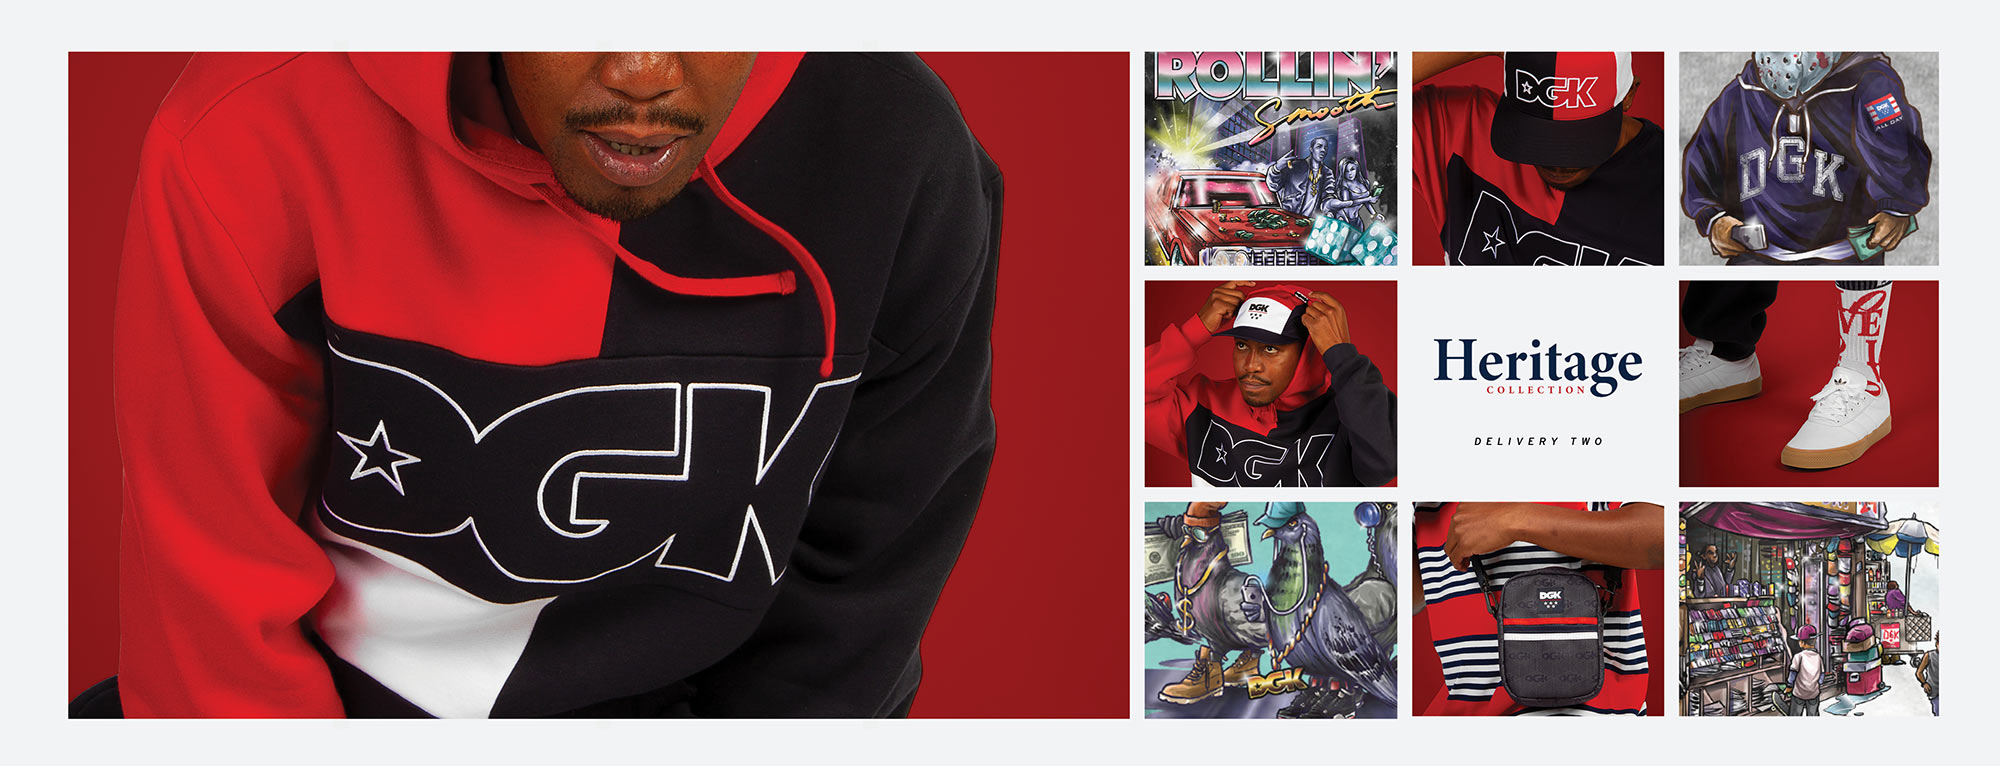 DGK Heritage Collection